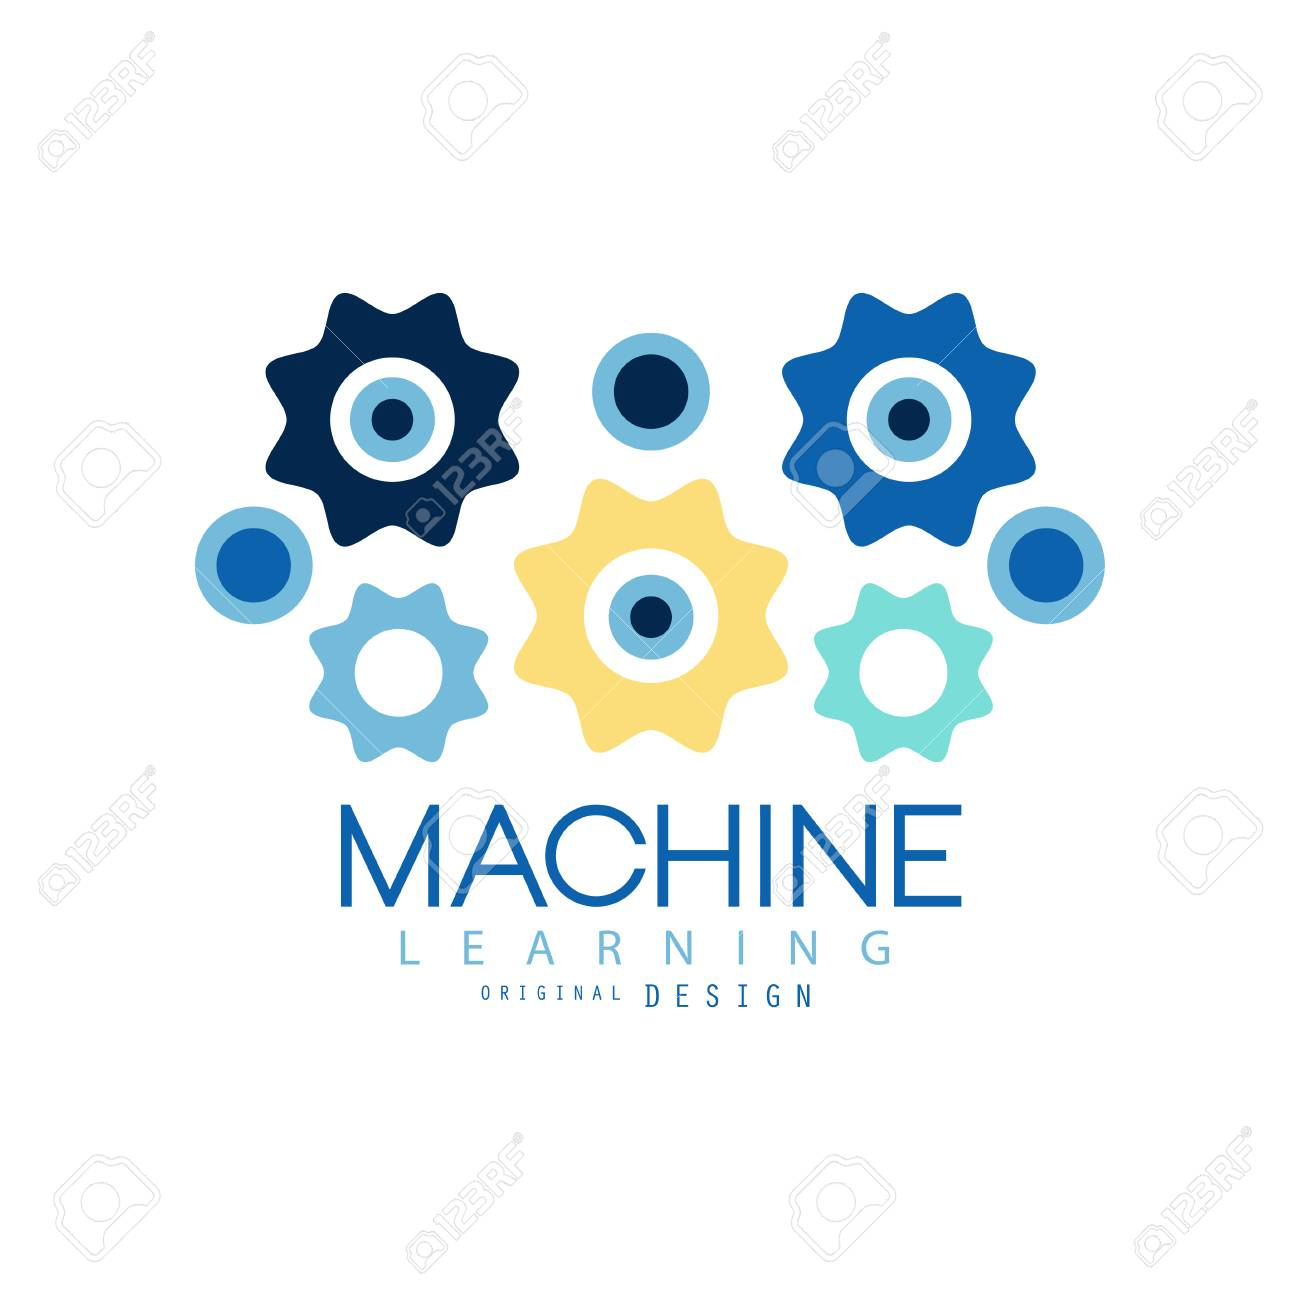 Machine learning process and data science technology symbol